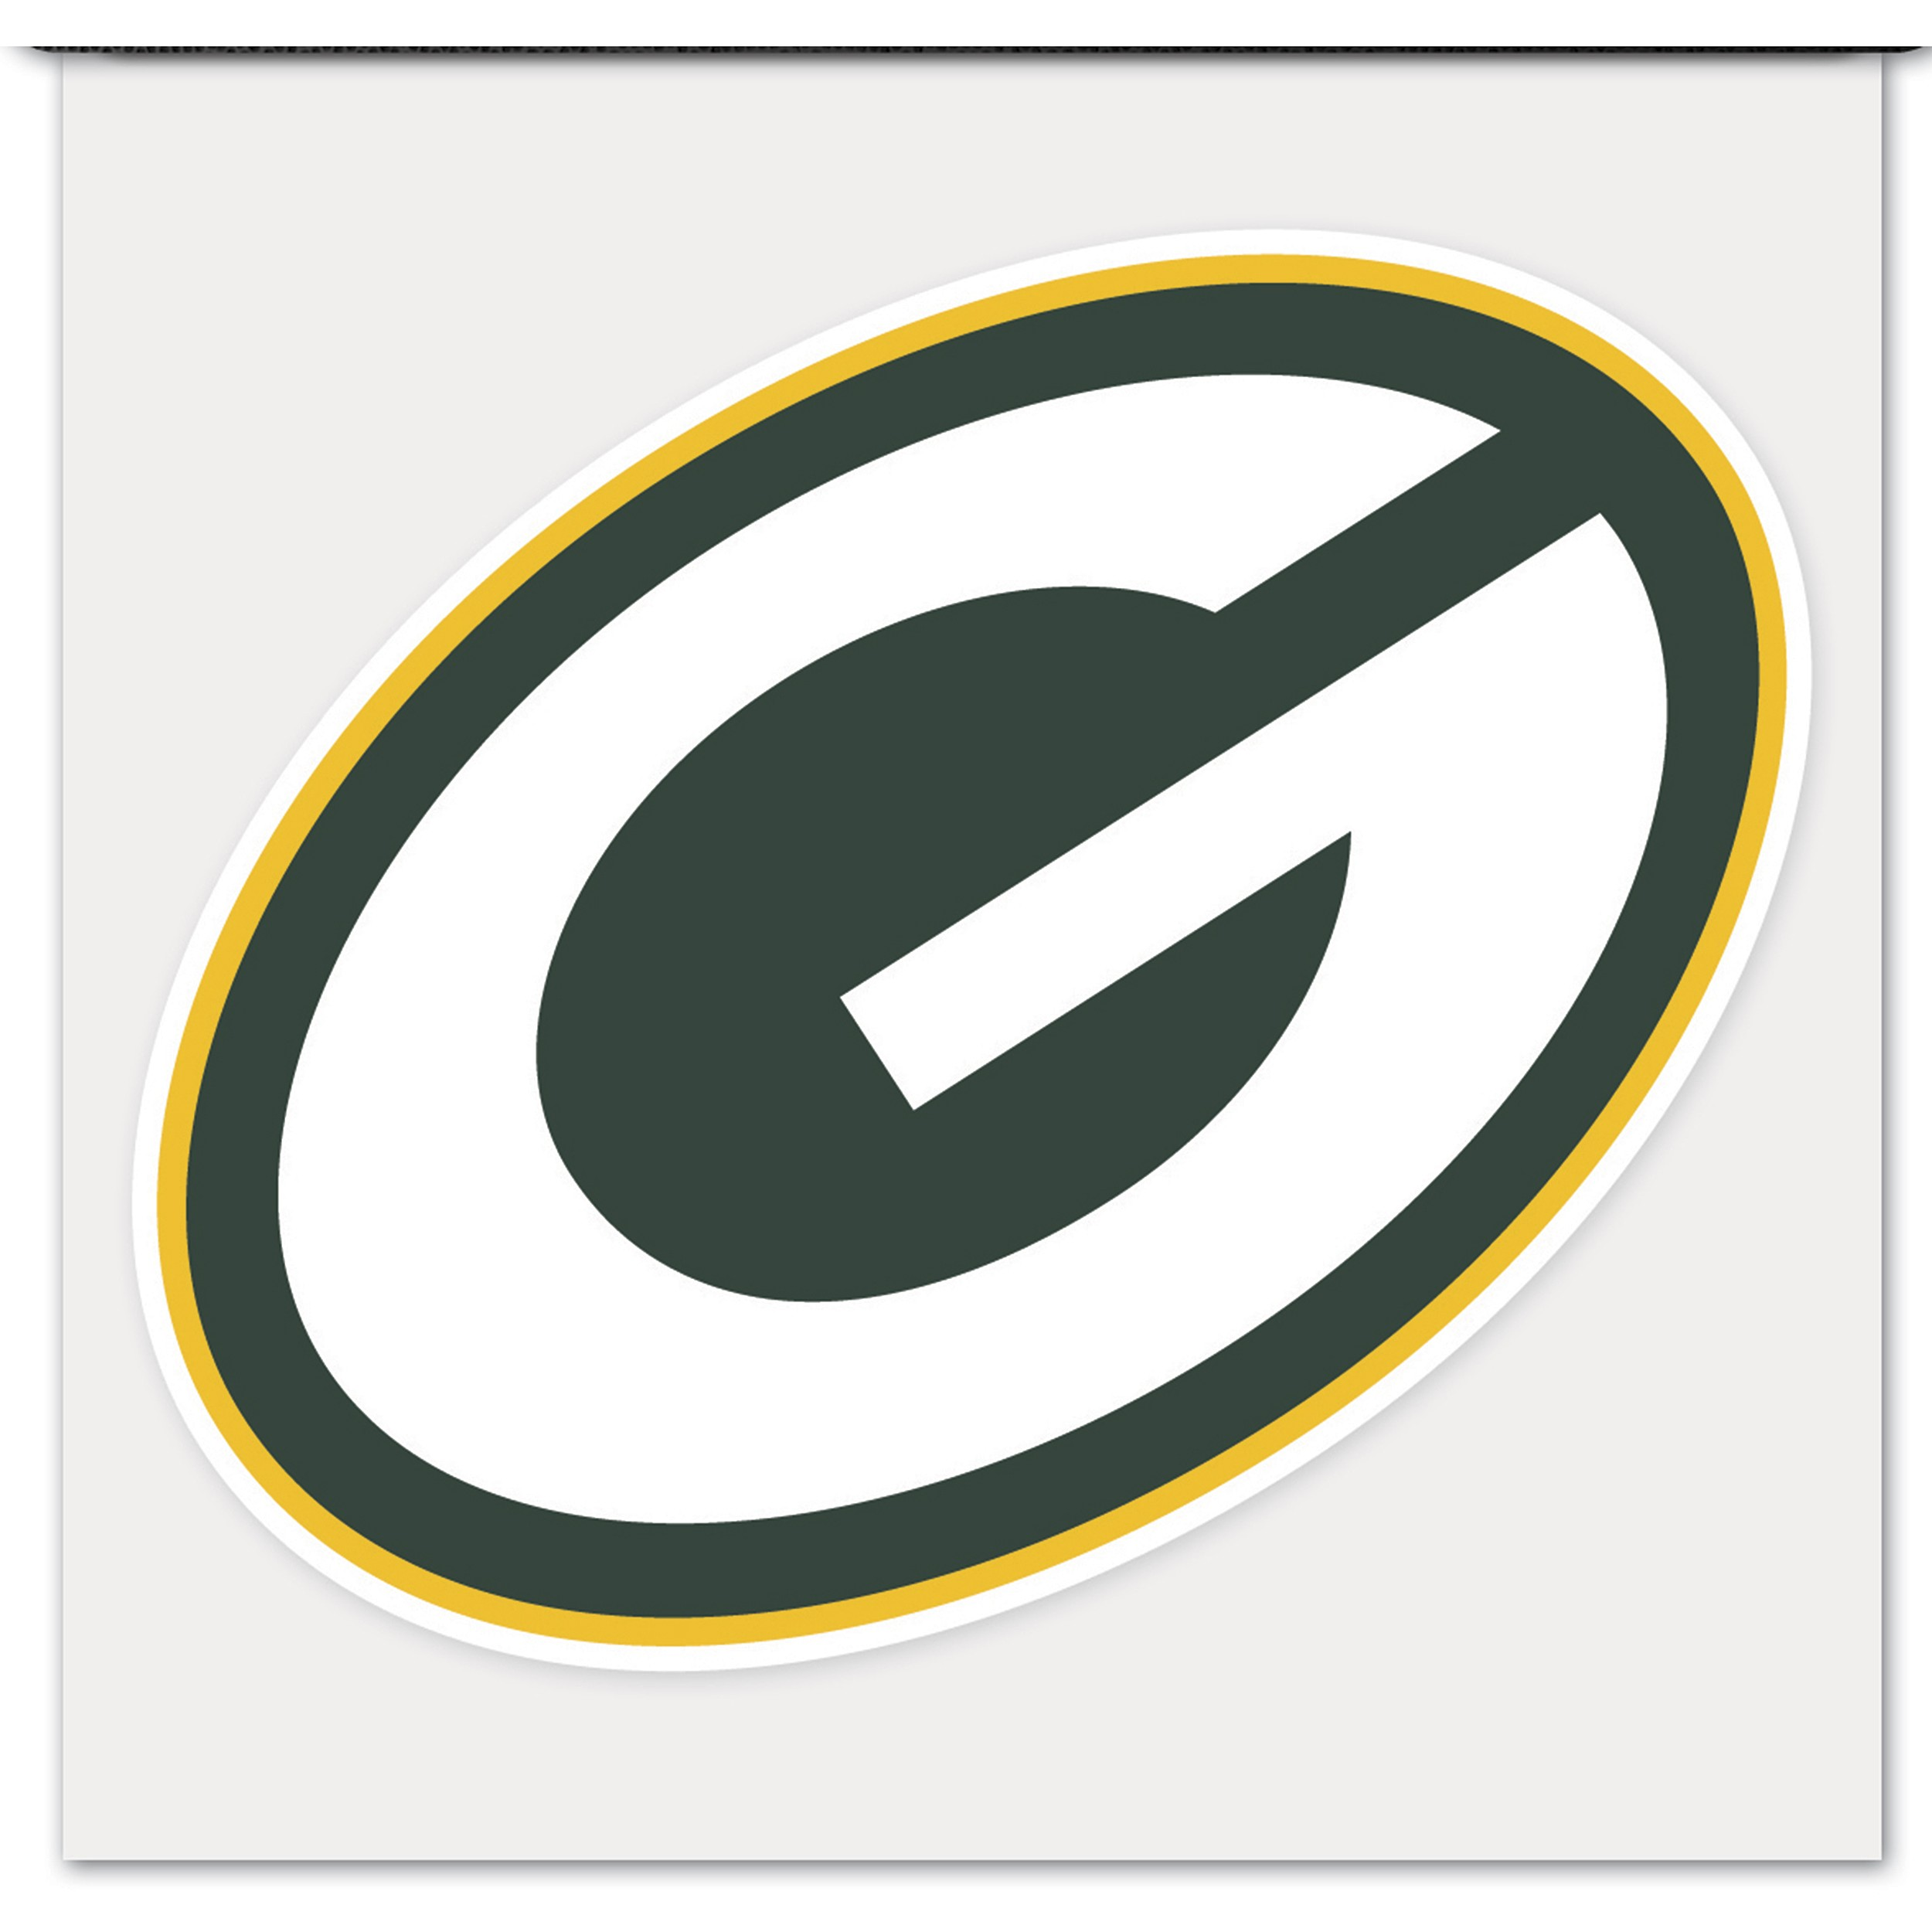 2500x2500 Green Bay Packers